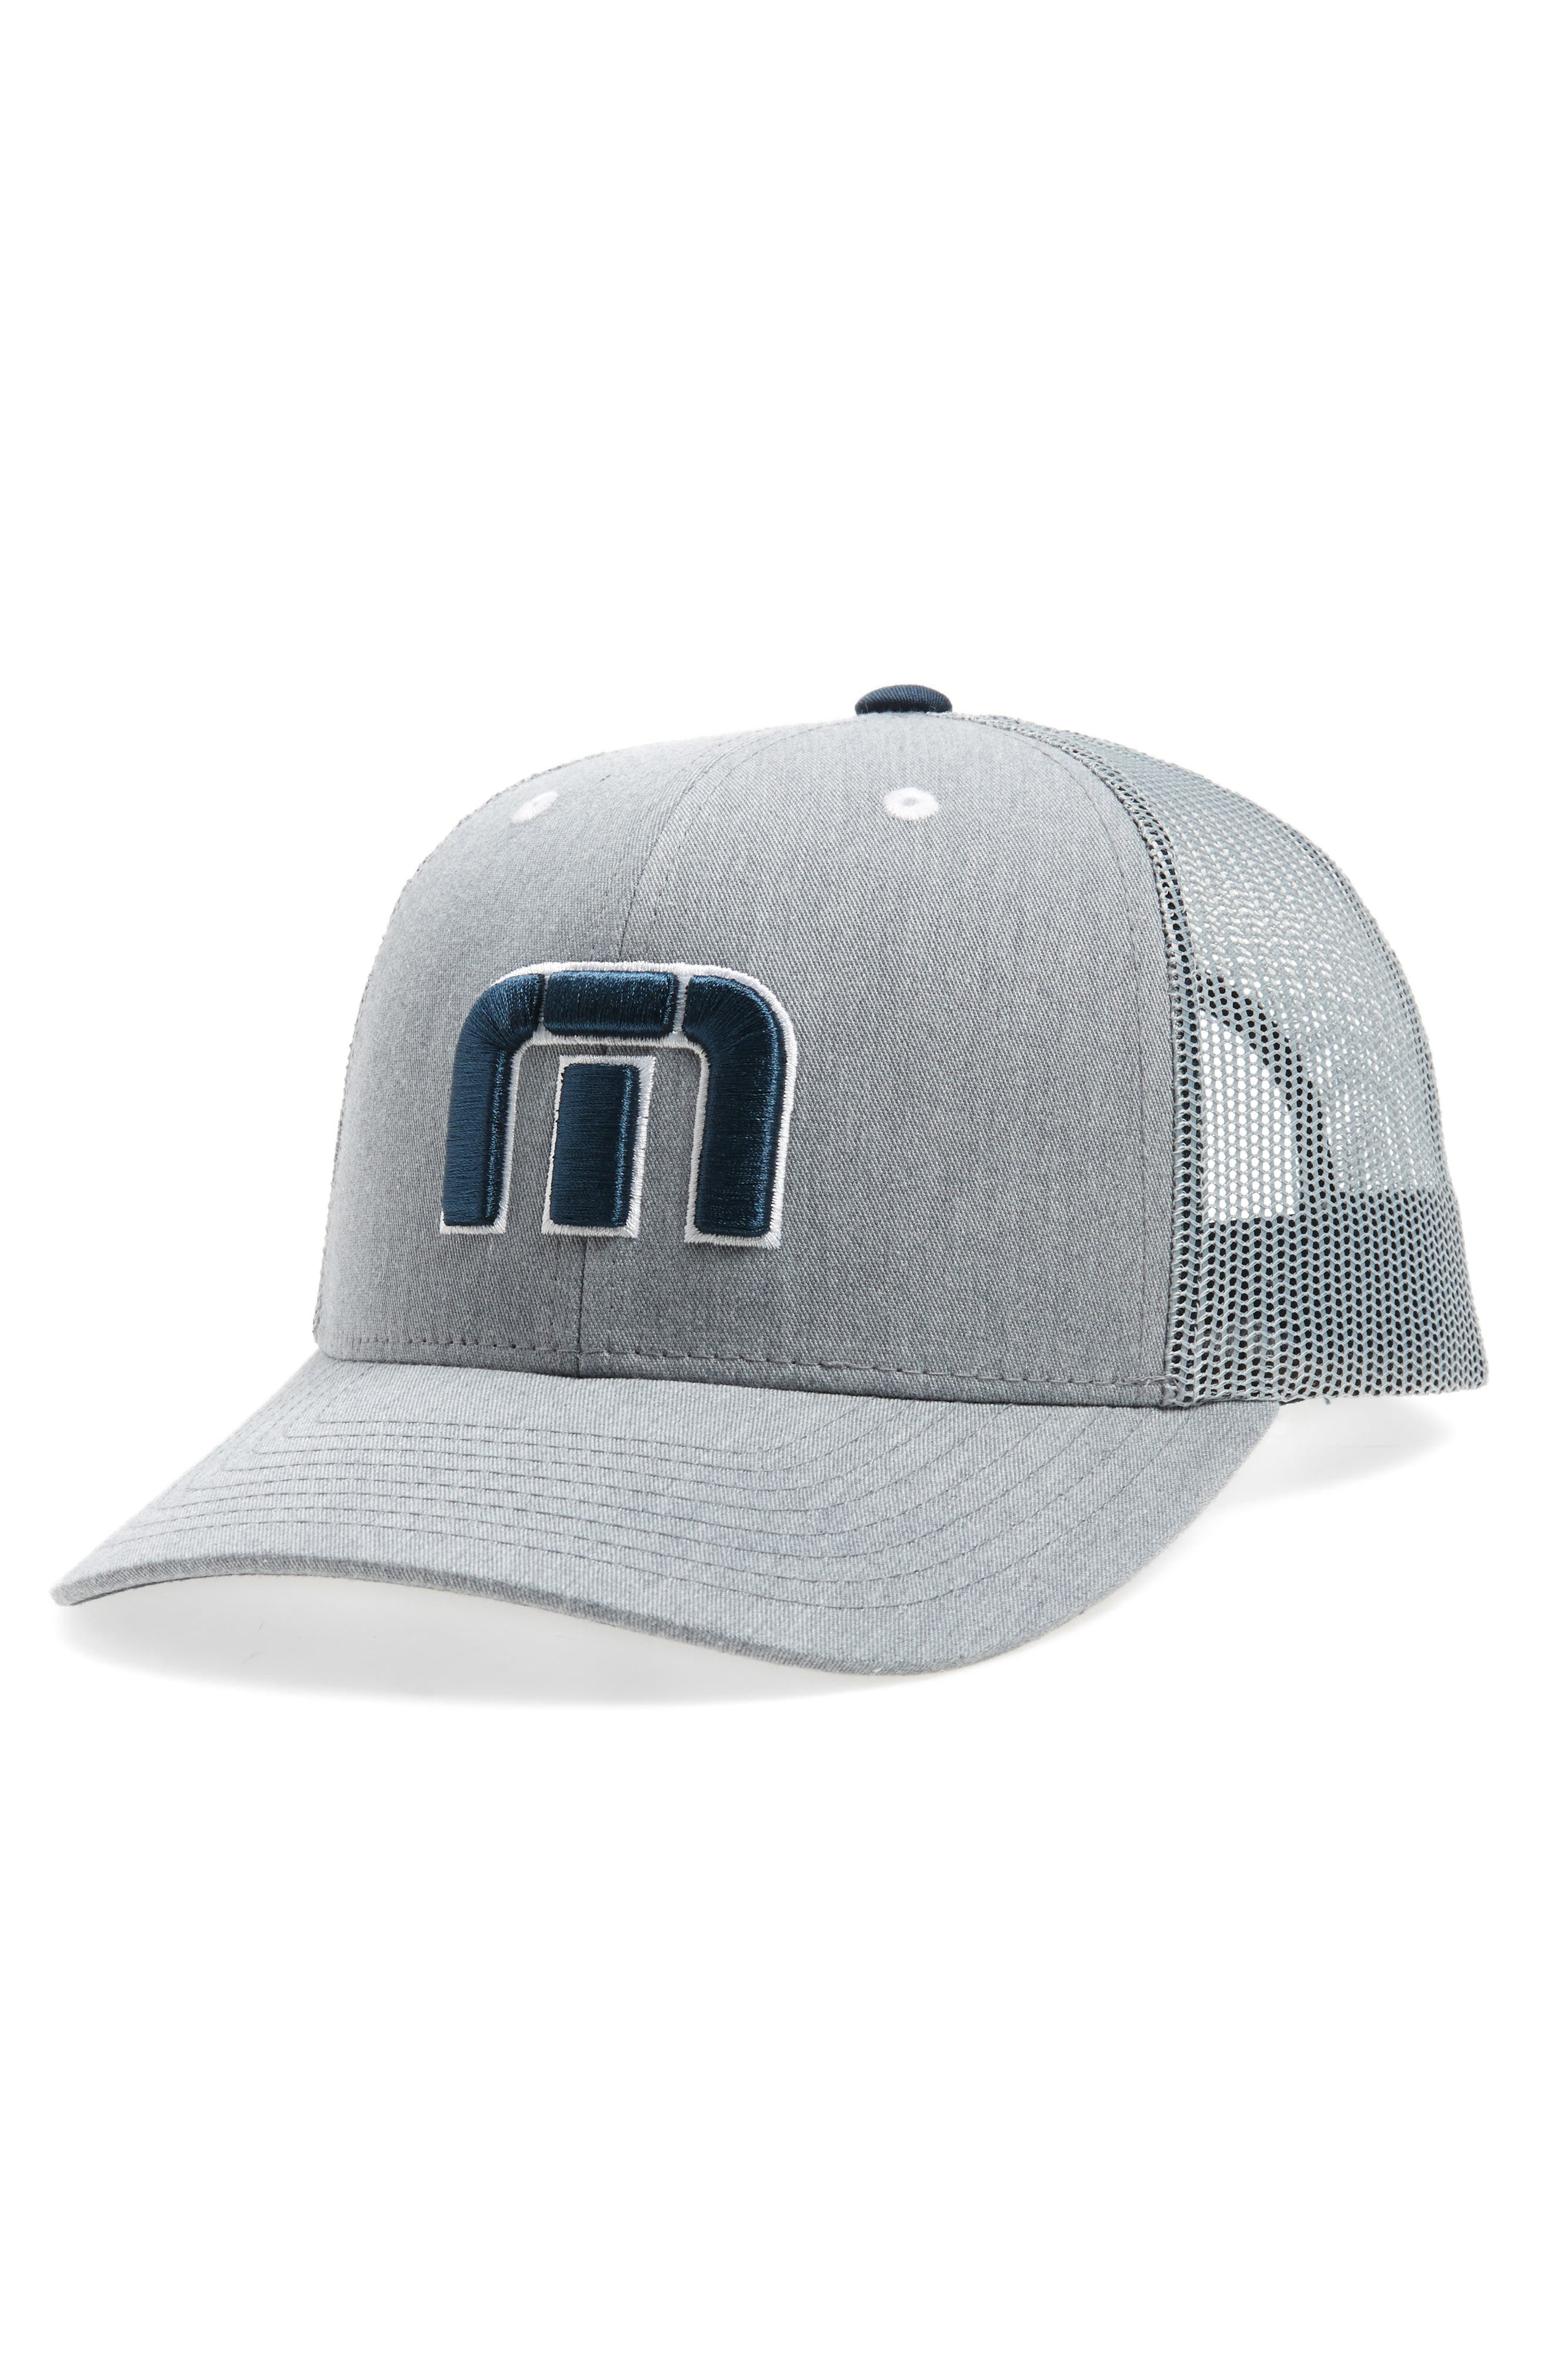 0a0a592690f greece travis mathew b bahamas hat 6b802 7b1ce  discount code for morales  trucker hat main color 020 8aac0 47dc9